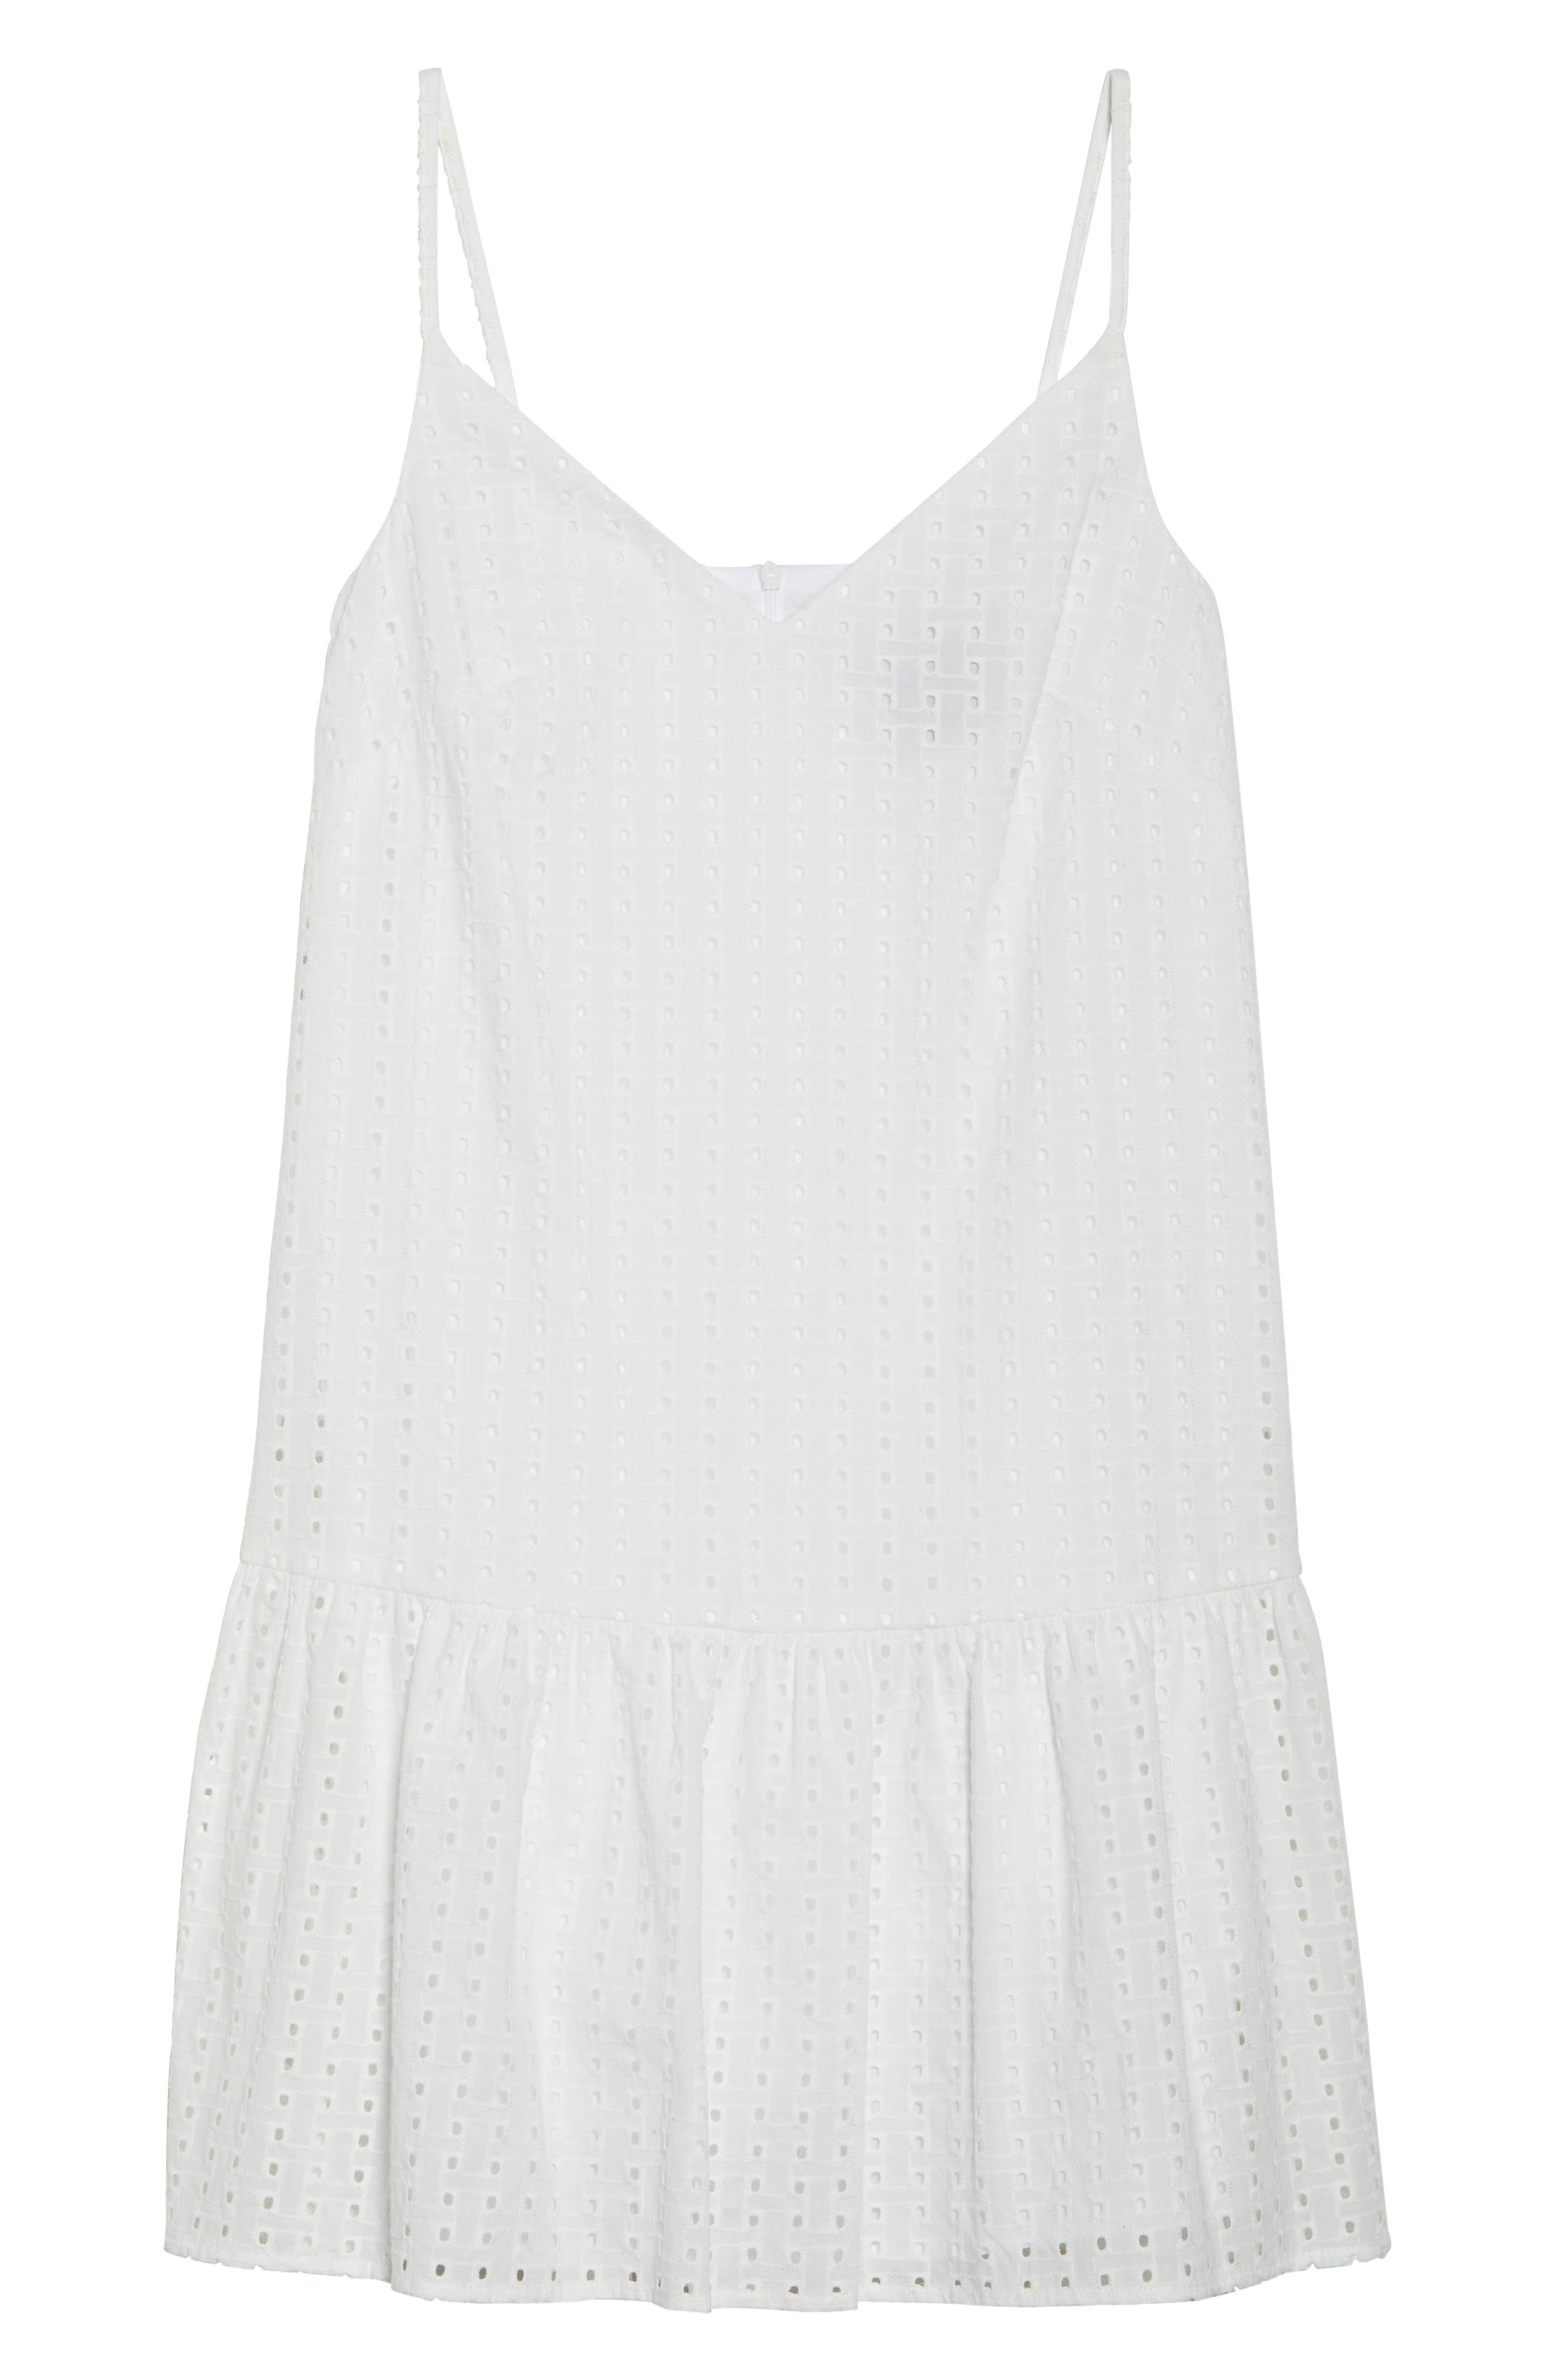 Eyelet Sundress,                             Alternate thumbnail 7, color,                             101